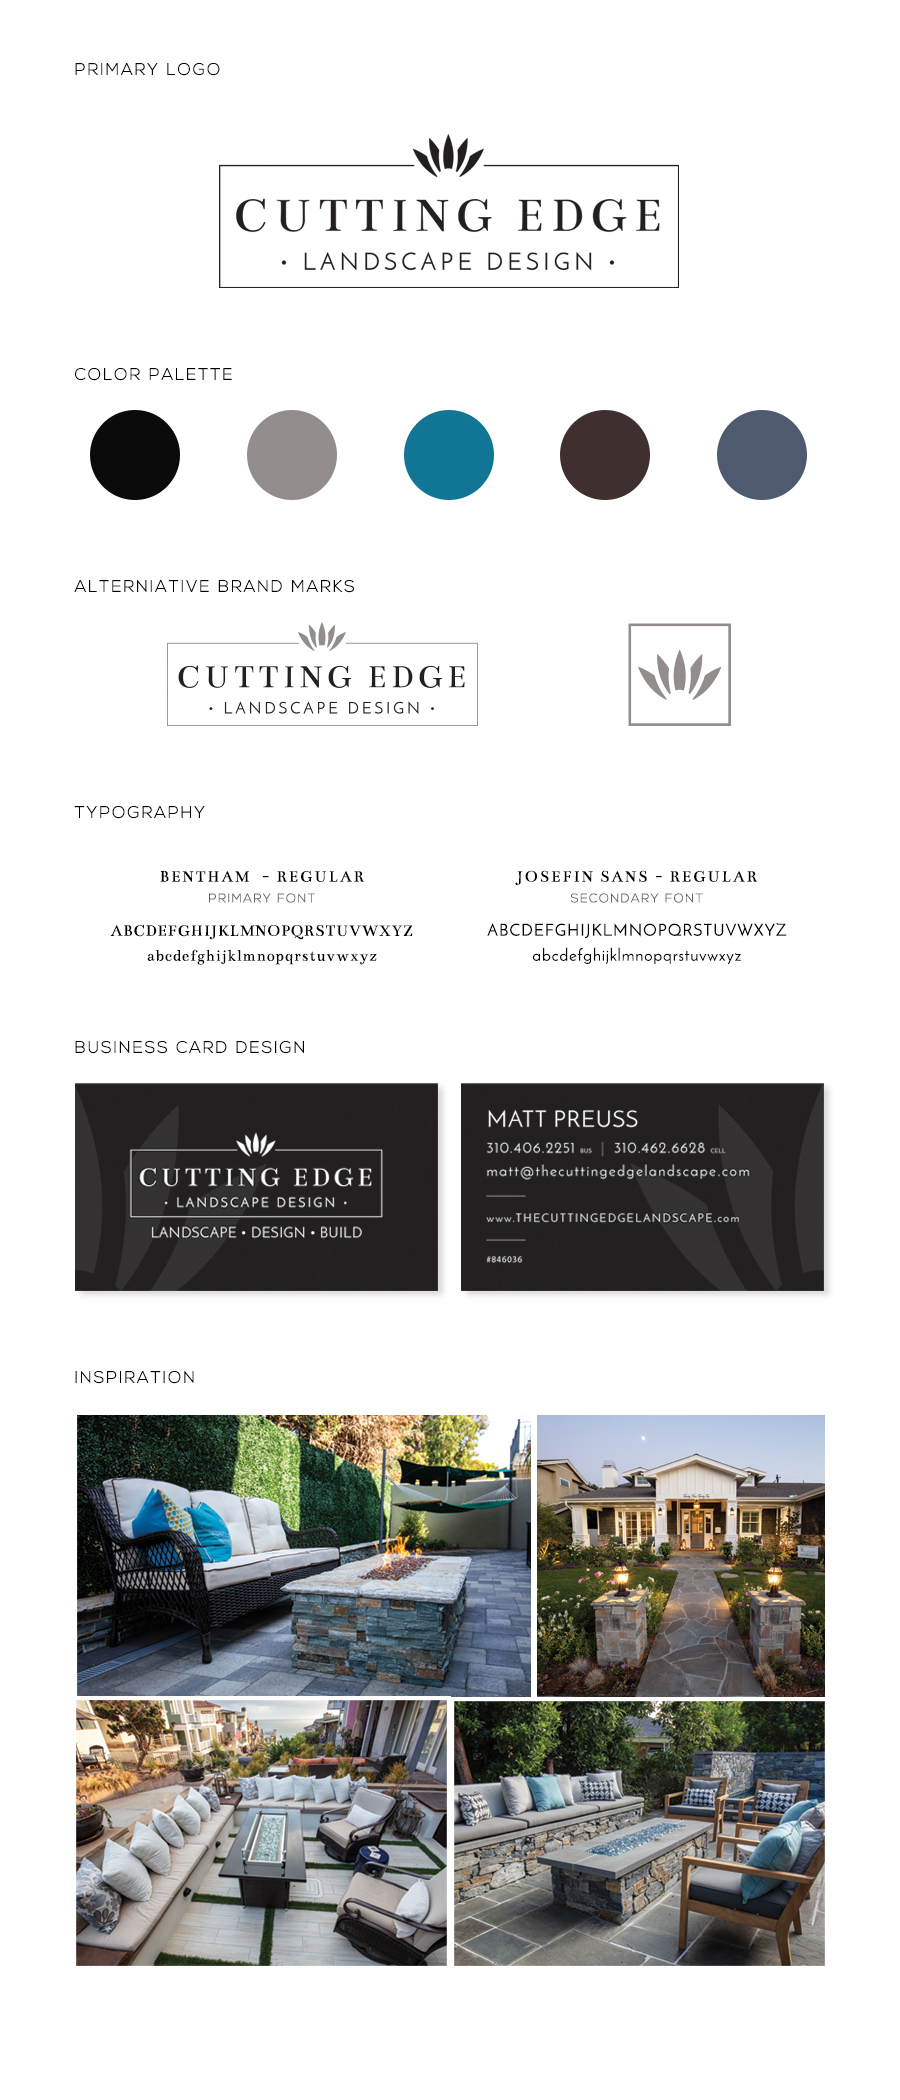 cuttingedge_branding_board_2.jpg